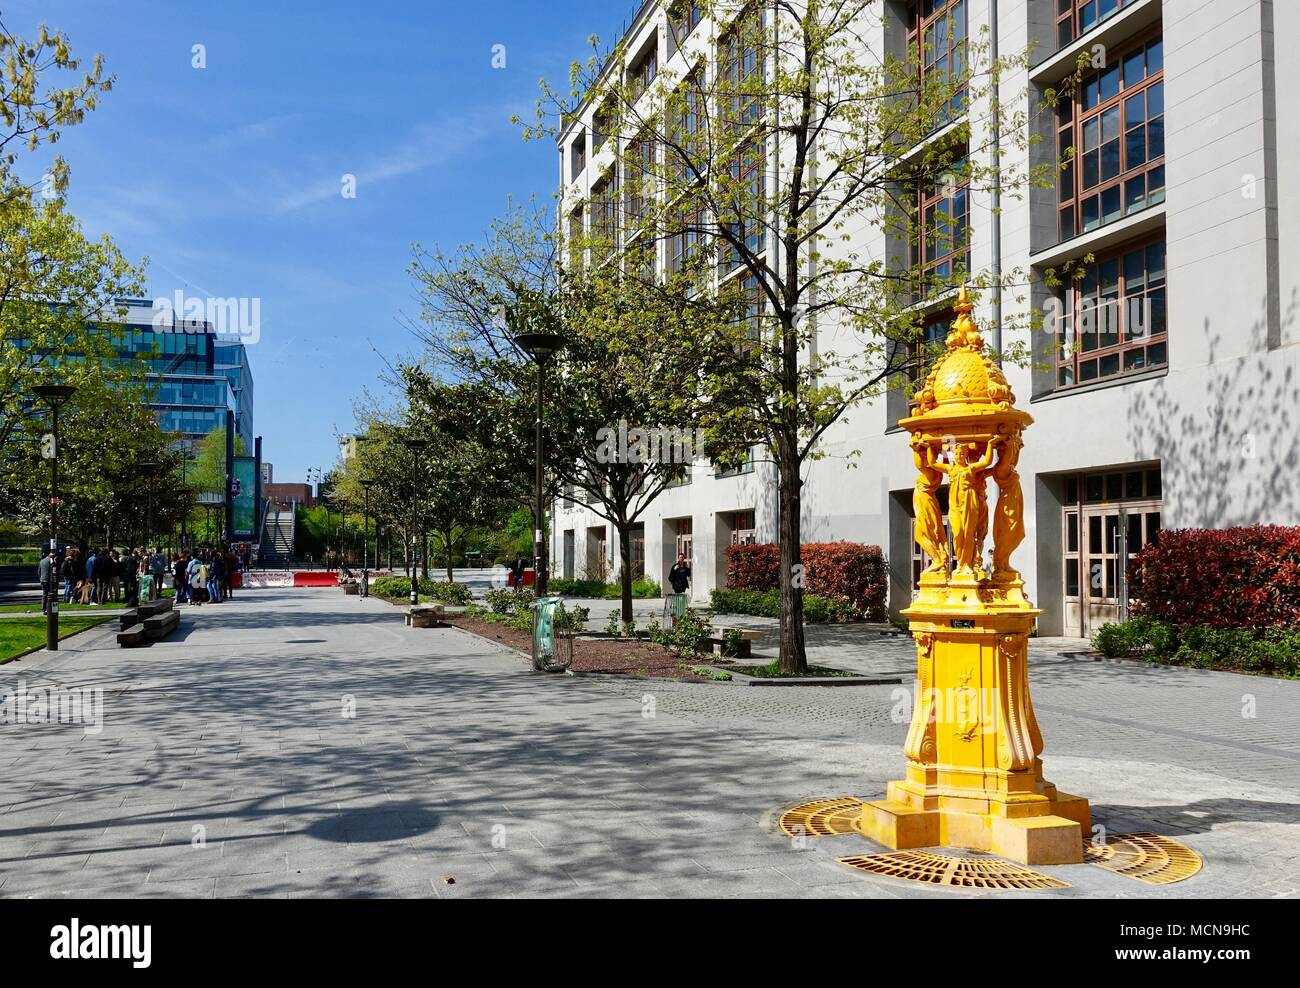 Yellow Wallace Fountain on University campus, Diderot. Paris, France - Stock Image